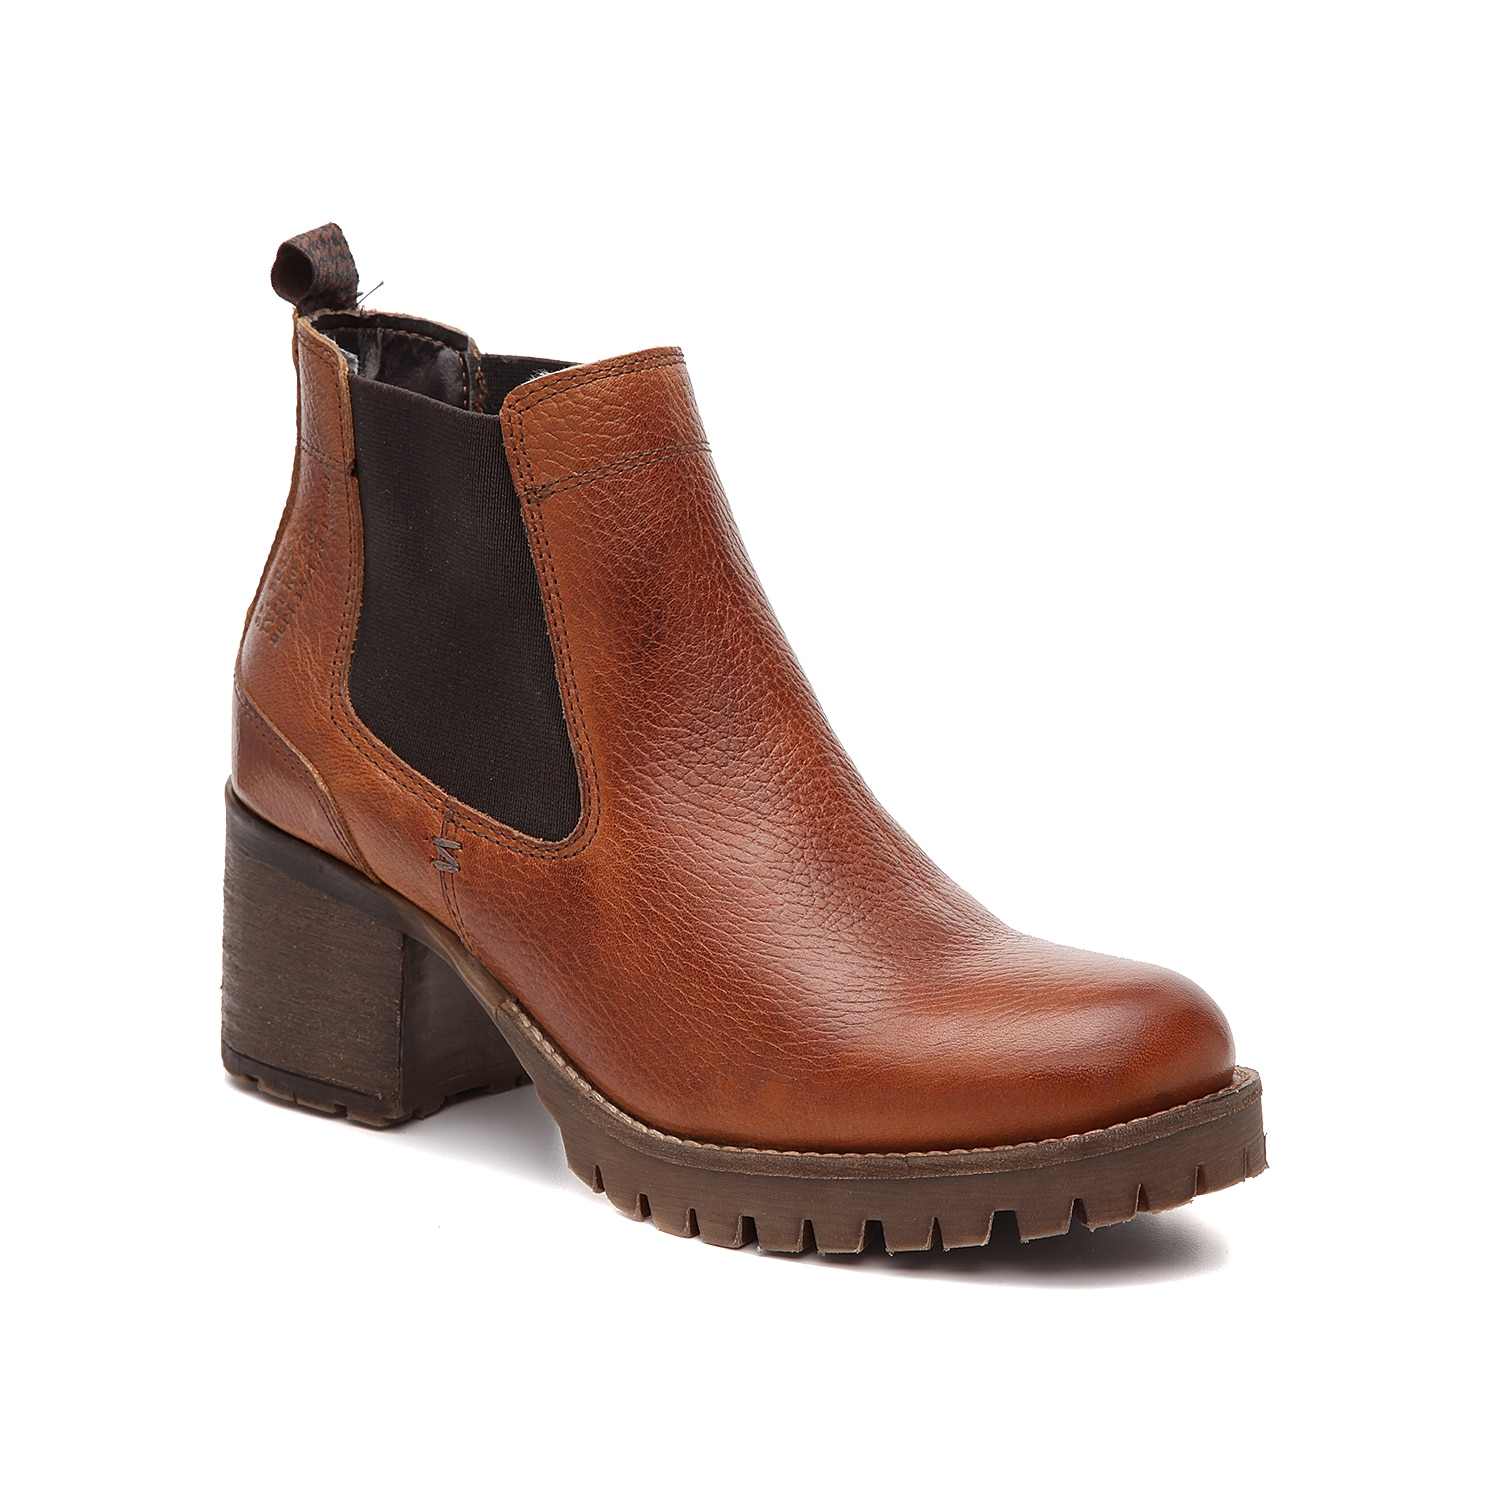 The Cory bootie from Bullboxer will be the perfect addition to your wardrobe. This Chelsea boot features a supple leather upper and chunky block heel for confident steps. Click here for Boot Measuring Guide.